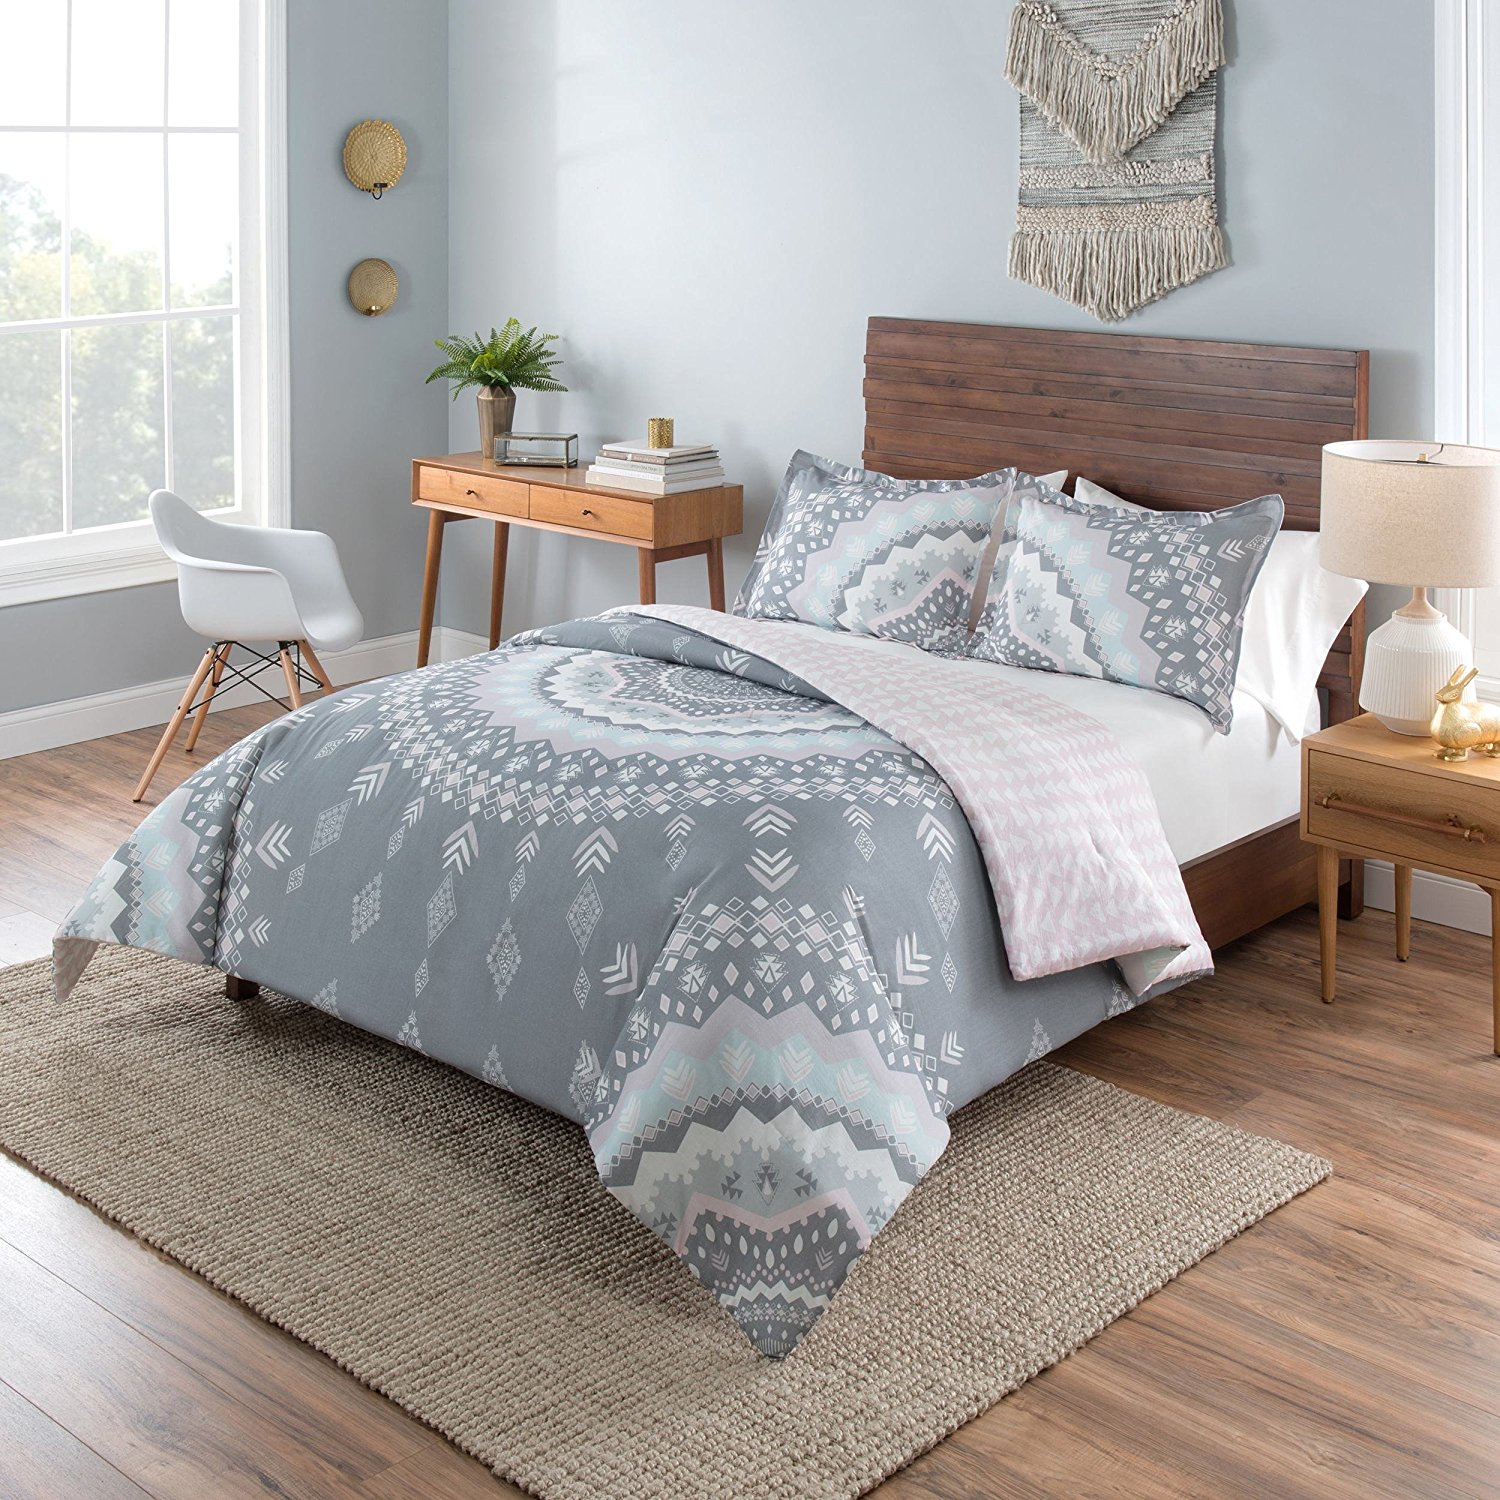 LO 3 Piece Grey Pink White Geometric Medallion Comforter Set Full Queen, Gray Light Pink Mandala Bohemian Motif Reversible Adult Bedding Master Bedroom Casual Fancy Colorful Traditional, Cotton